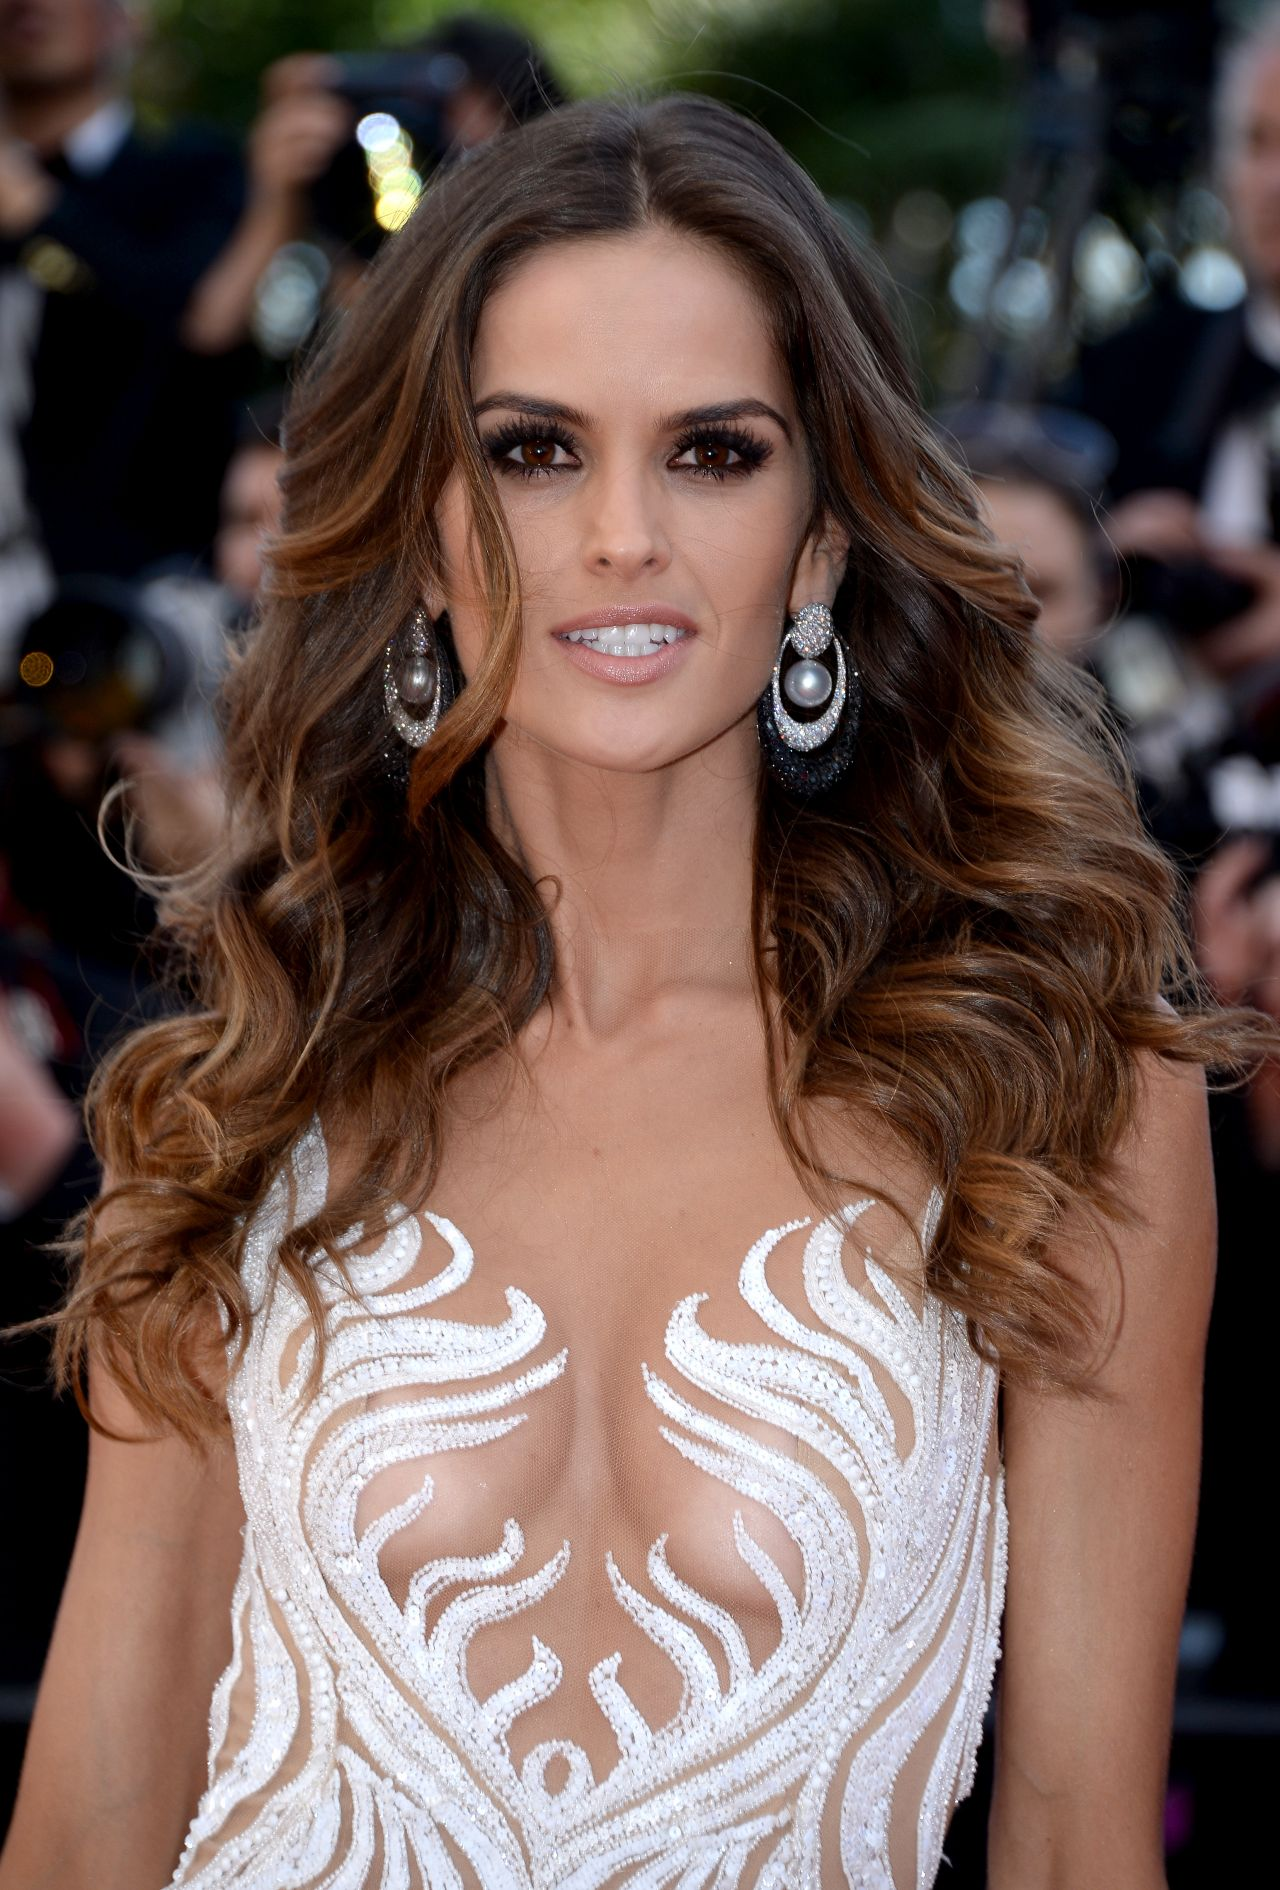 Izabel Goulart Youth Premiere During The Cannes Film